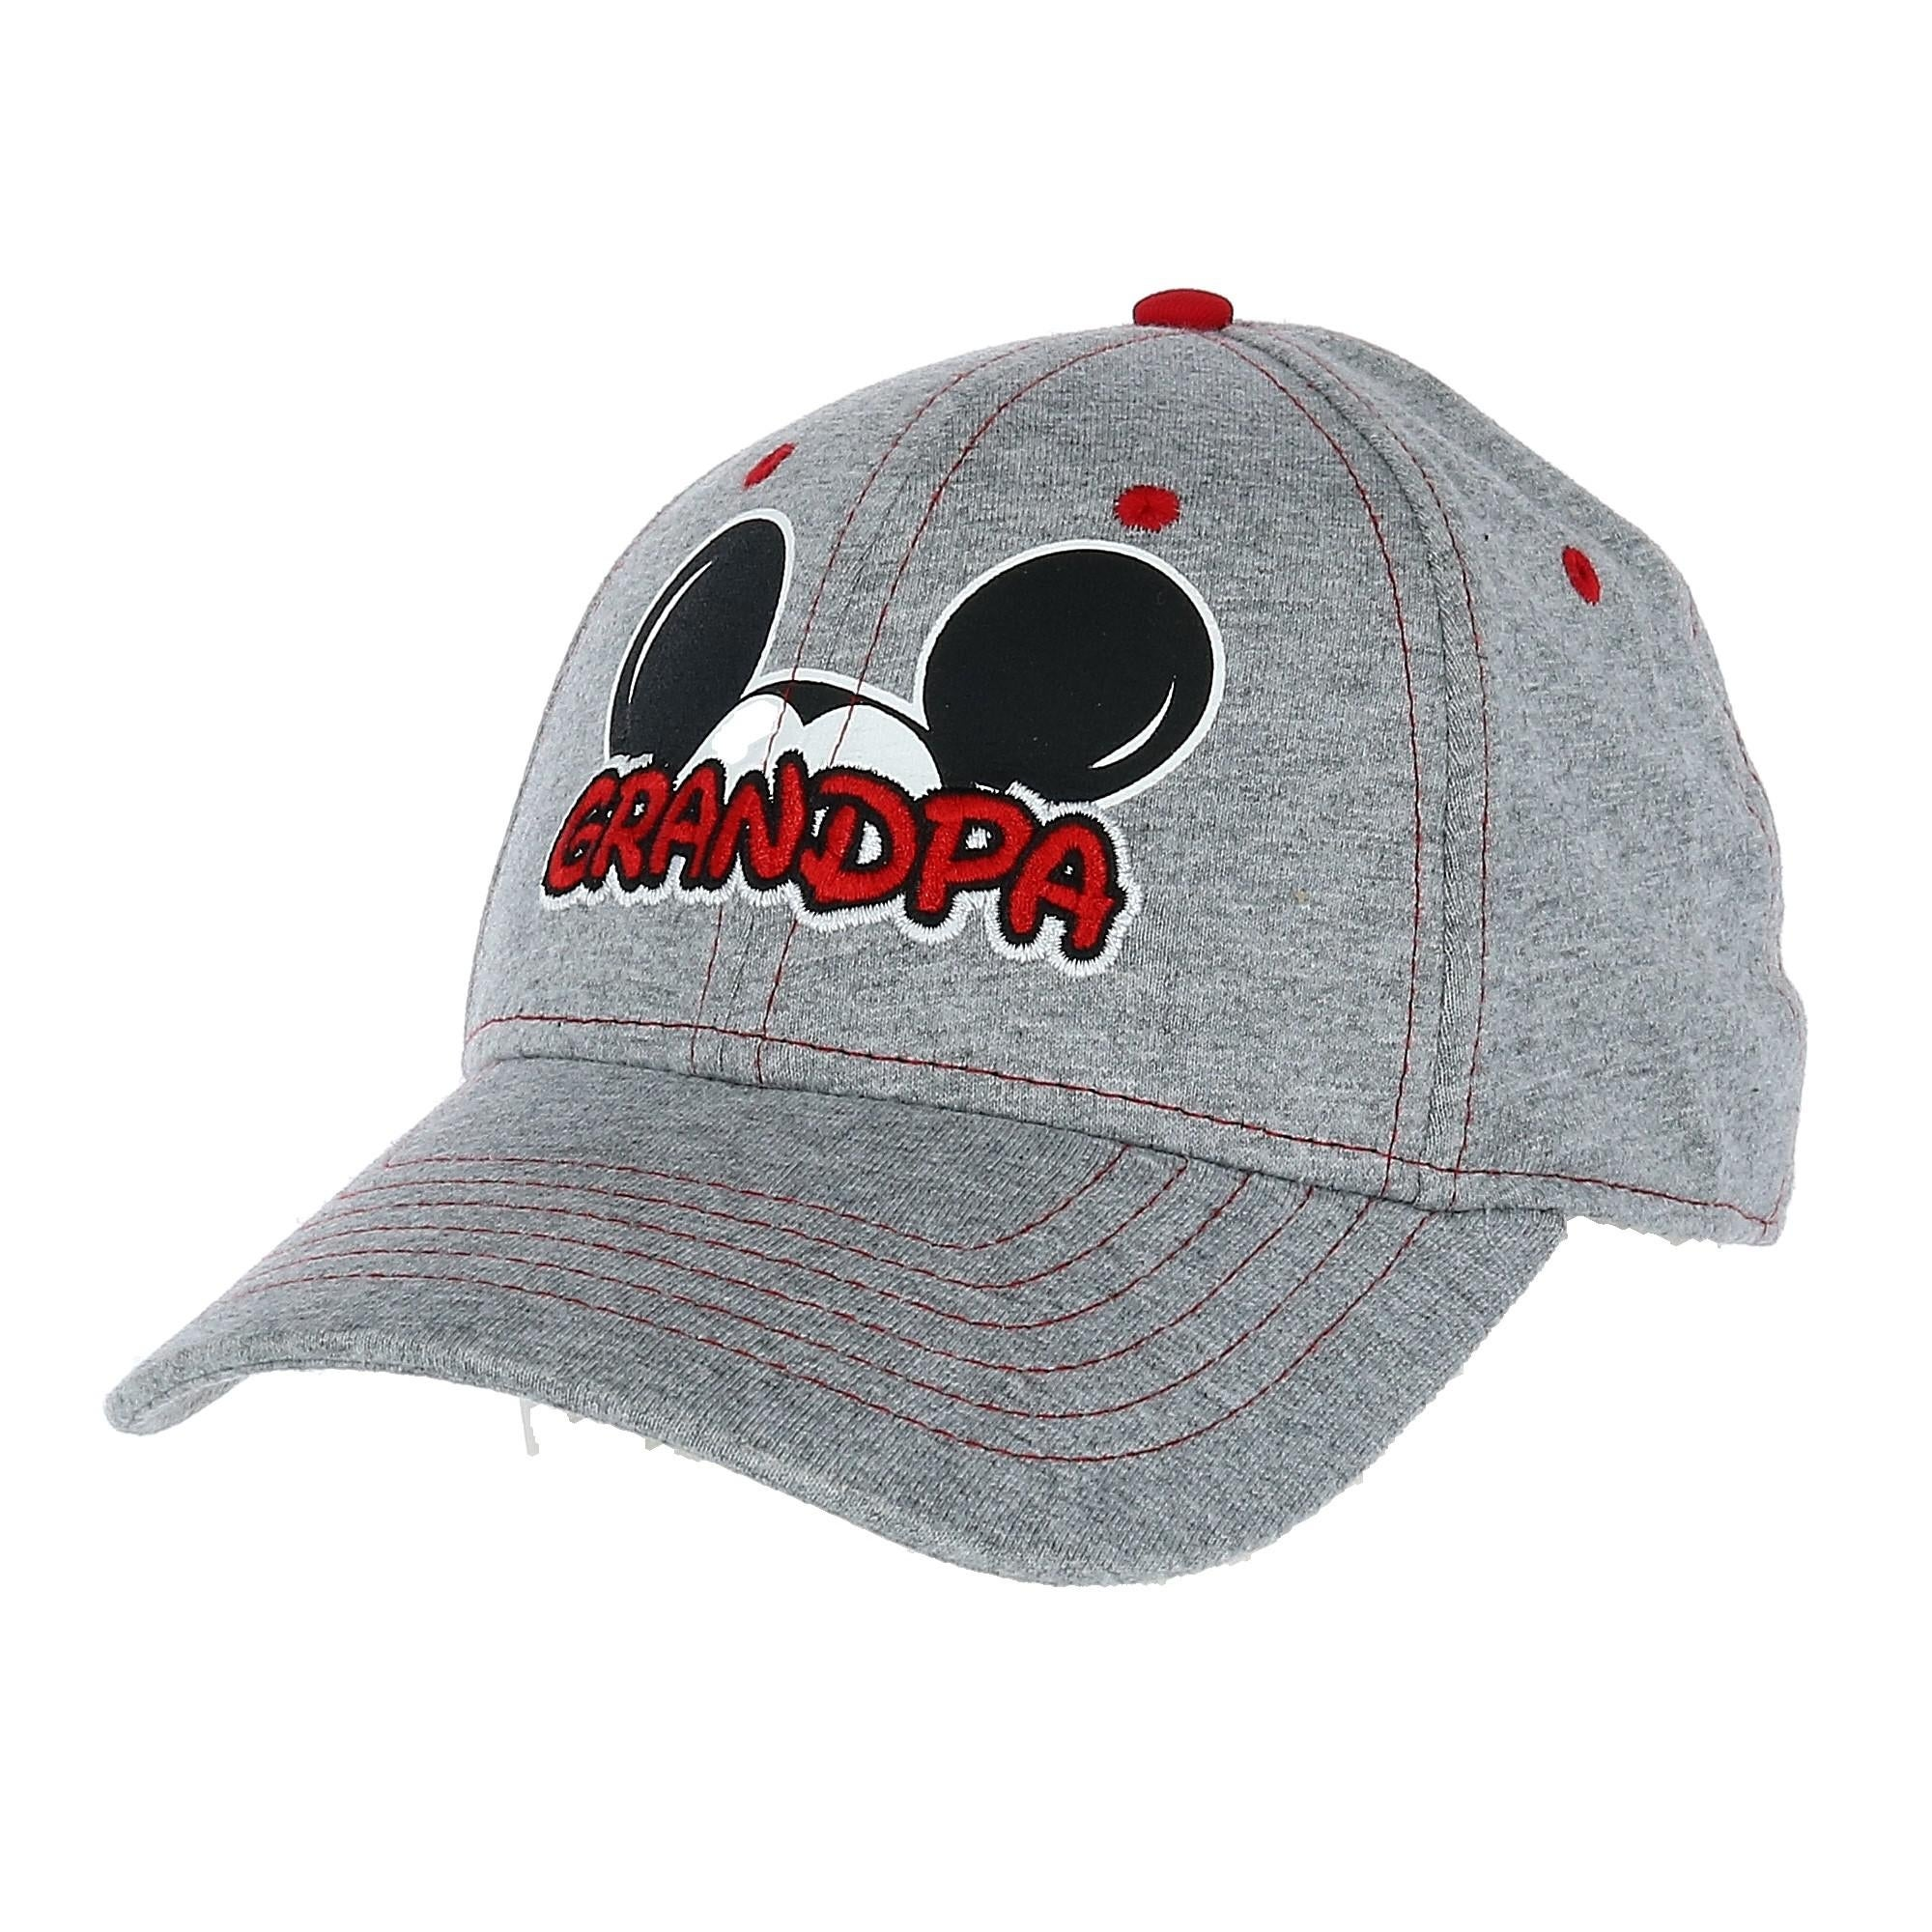 ffc85c3b31ba44 Shop Disney Men's Mickey Mouse Grandpa Fan Baseball Cap - Free Shipping On  Orders Over $45 - Overstock - 24203469